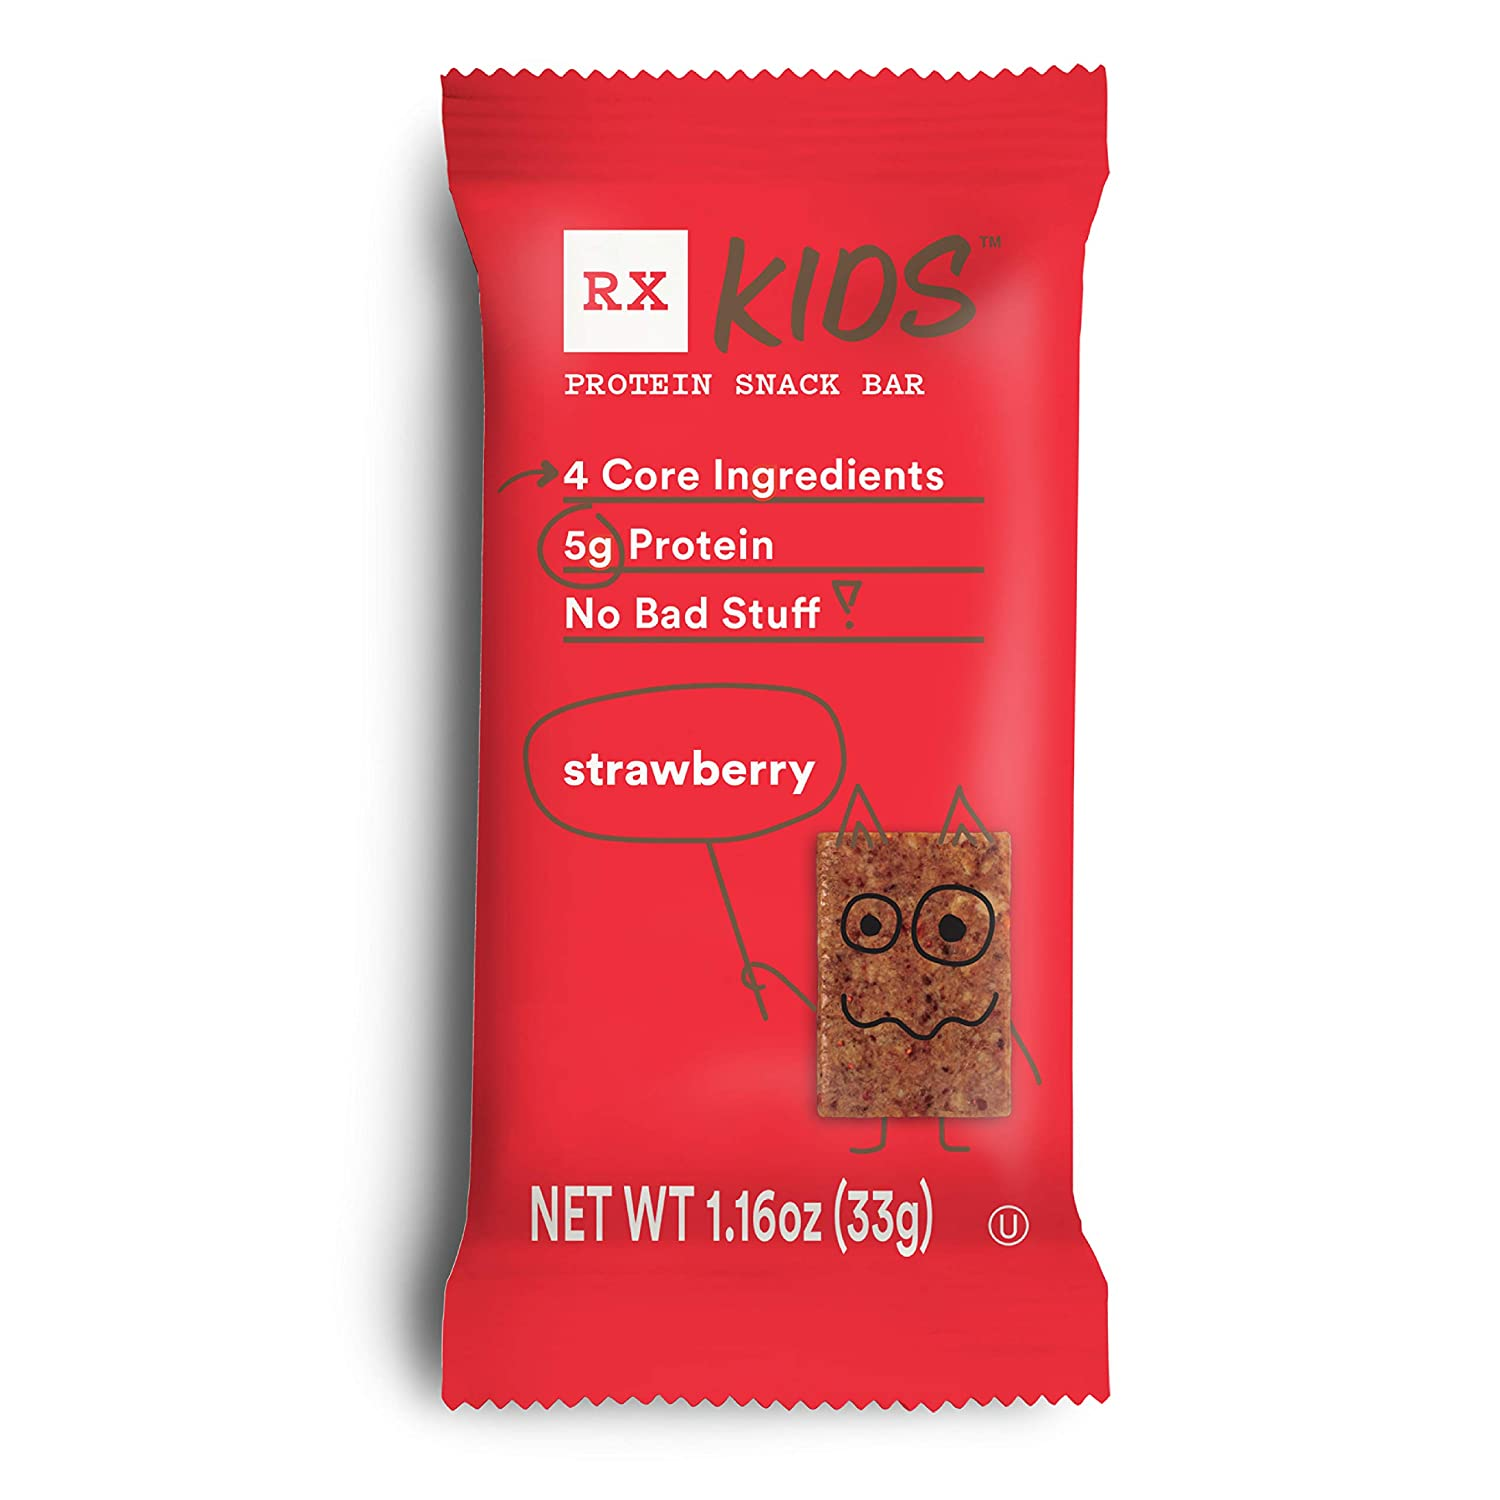 RXBAR RX Kids Protein Snack 30ct 1.16oz Limited price Strawberry Bar cheap Bars